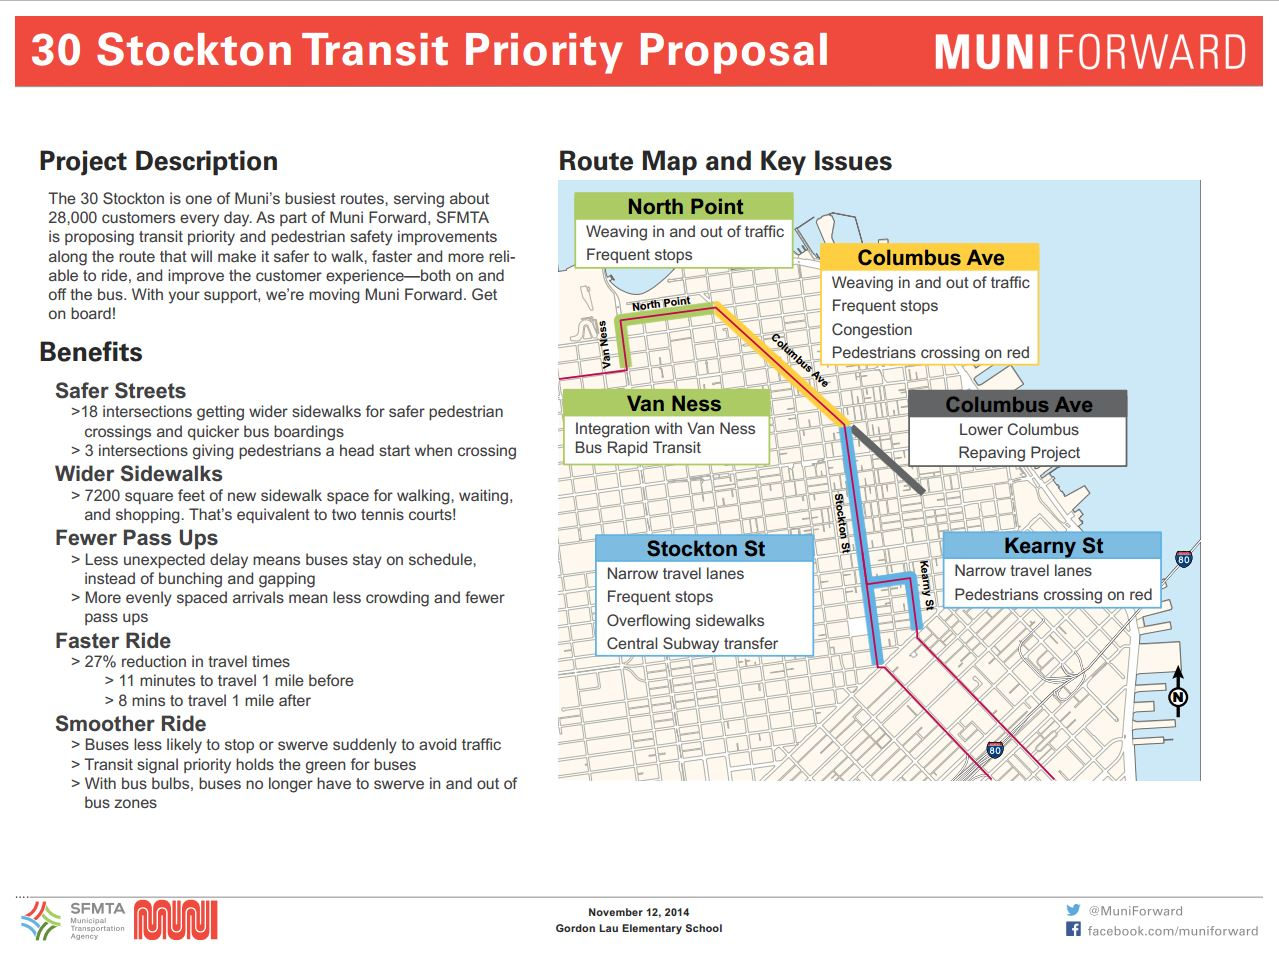 Powerpoint slide of 30 Stockton Muni Forward project benefits